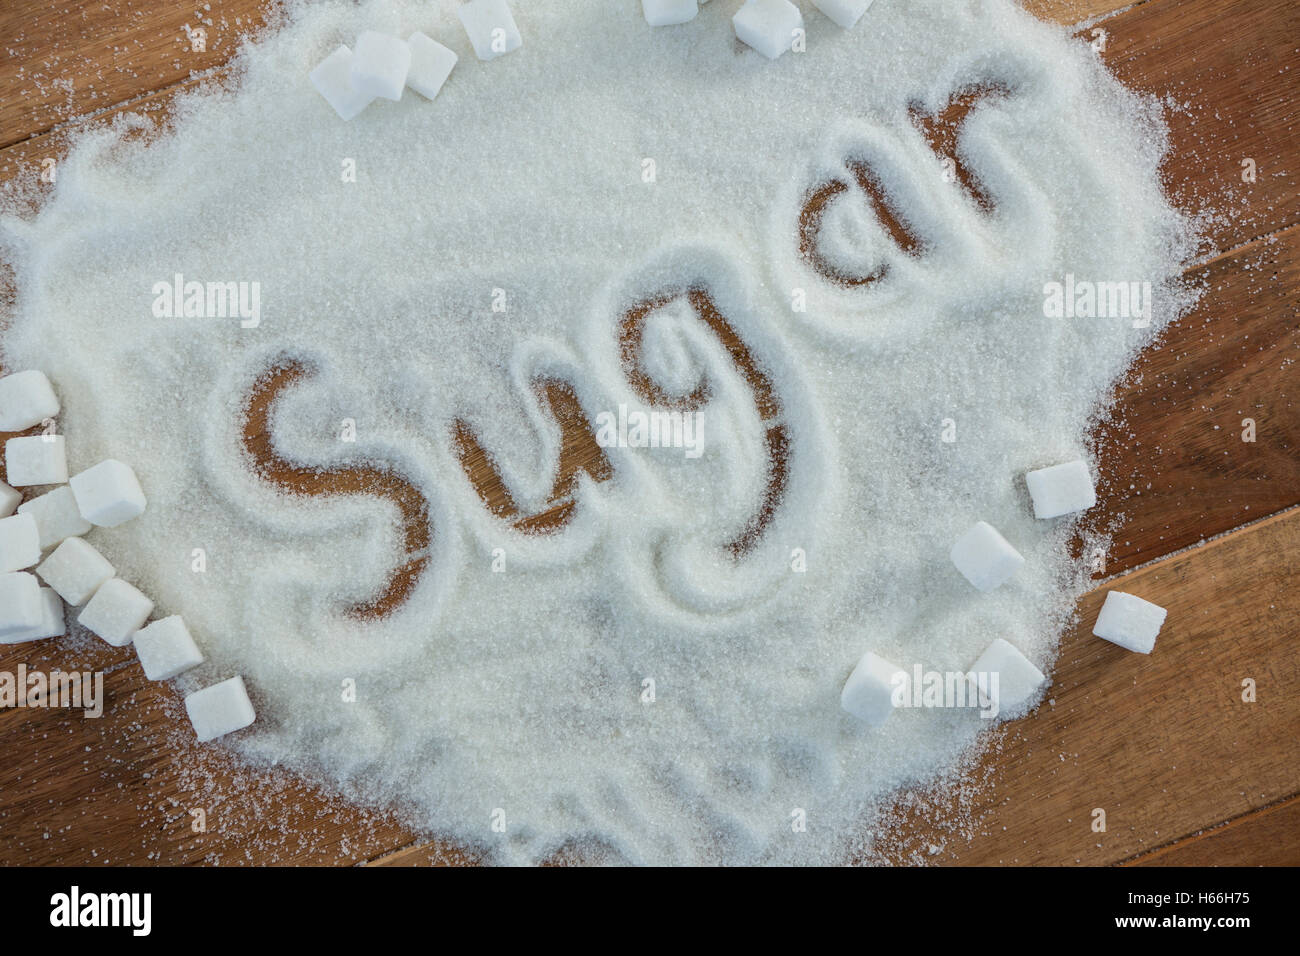 Sugar written on sugar powder - Stock Image